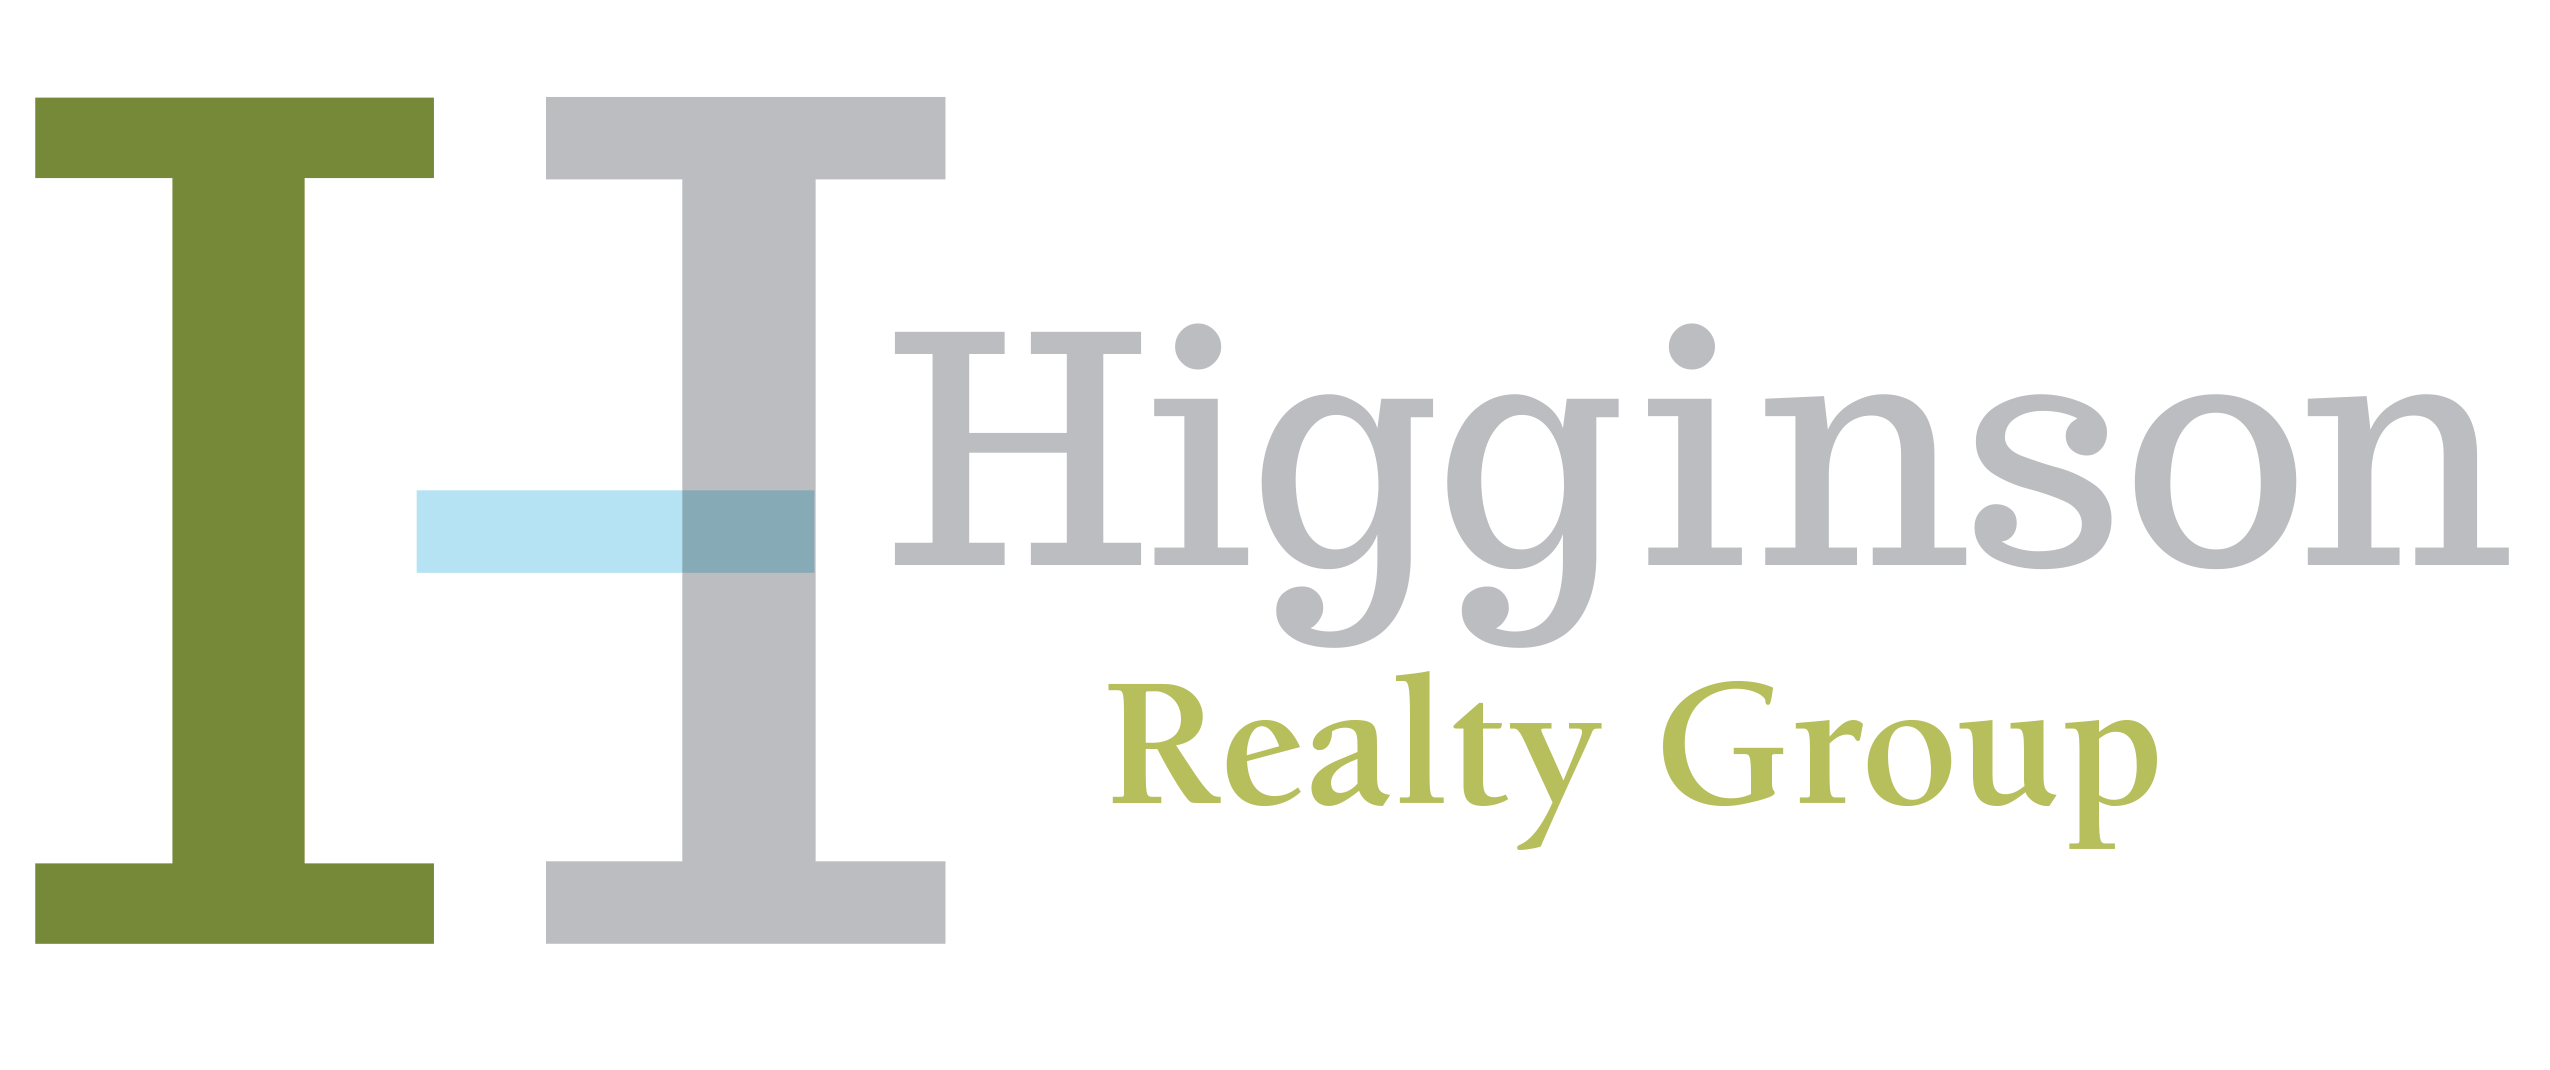 Higginson Realty Group